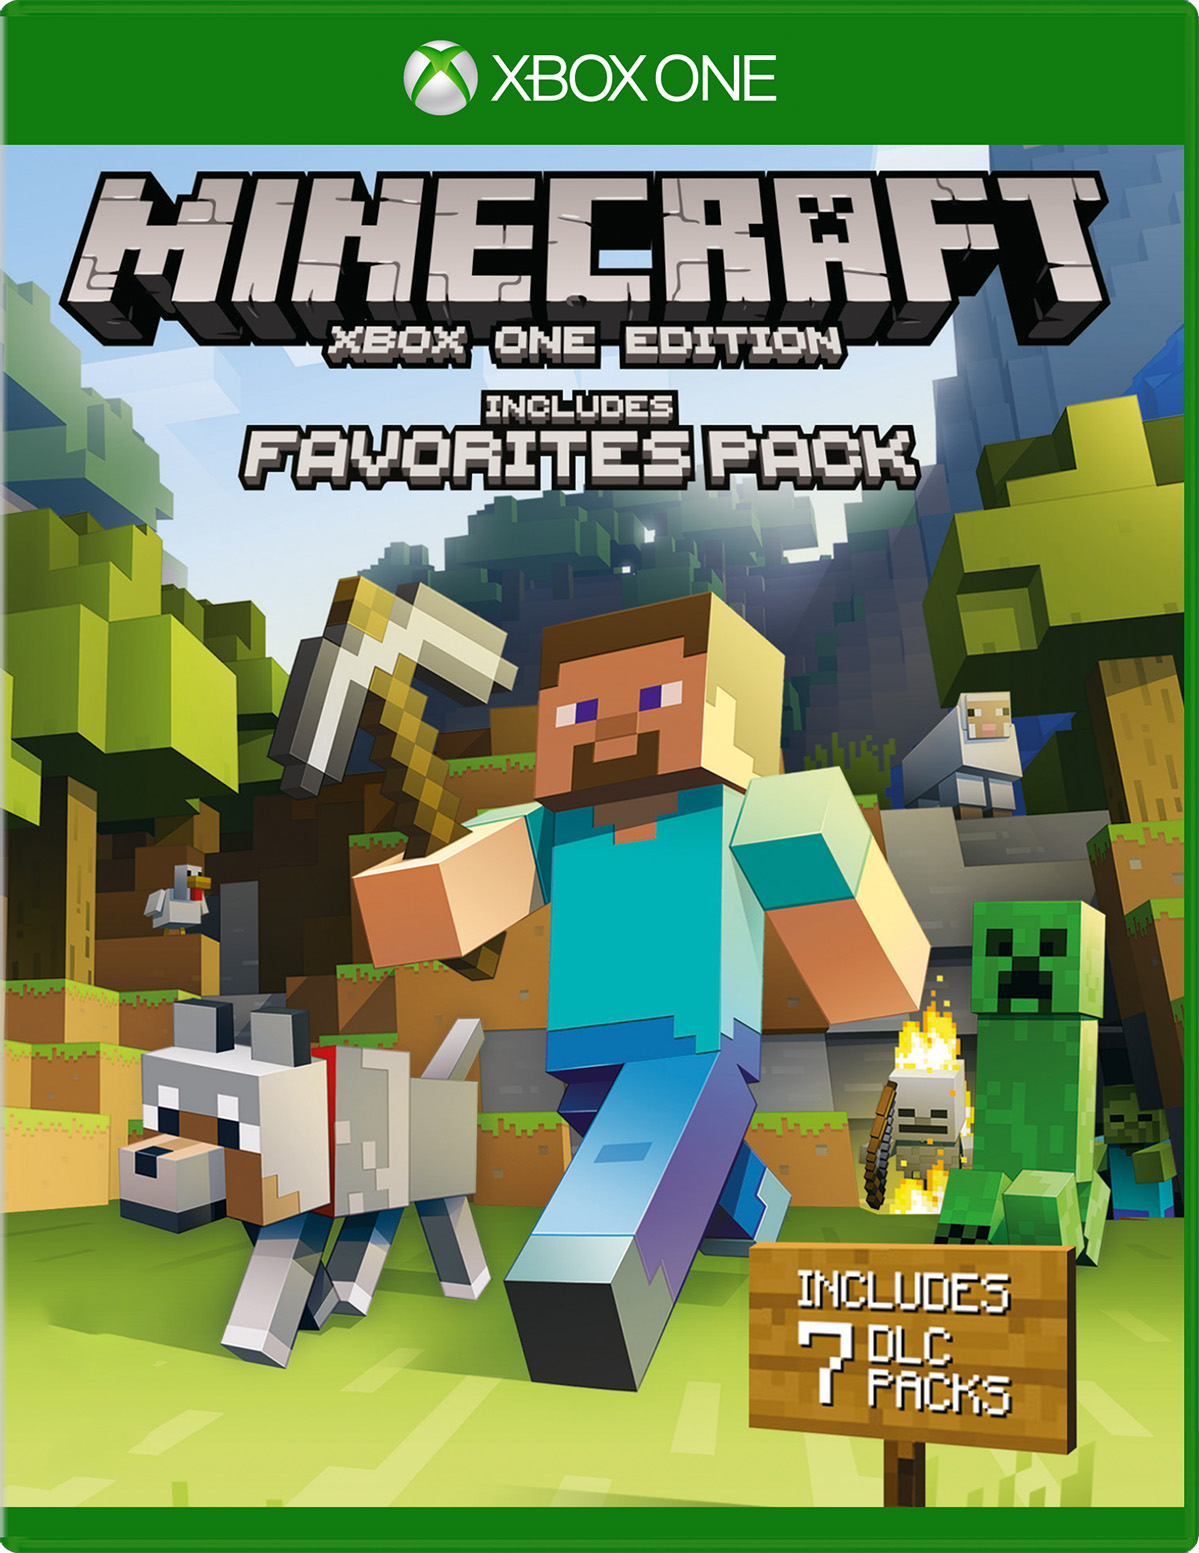 Minecraft Favorites Pack for Xbox One | Pack des favoris des adeptes de Minecraft pour Xbox One